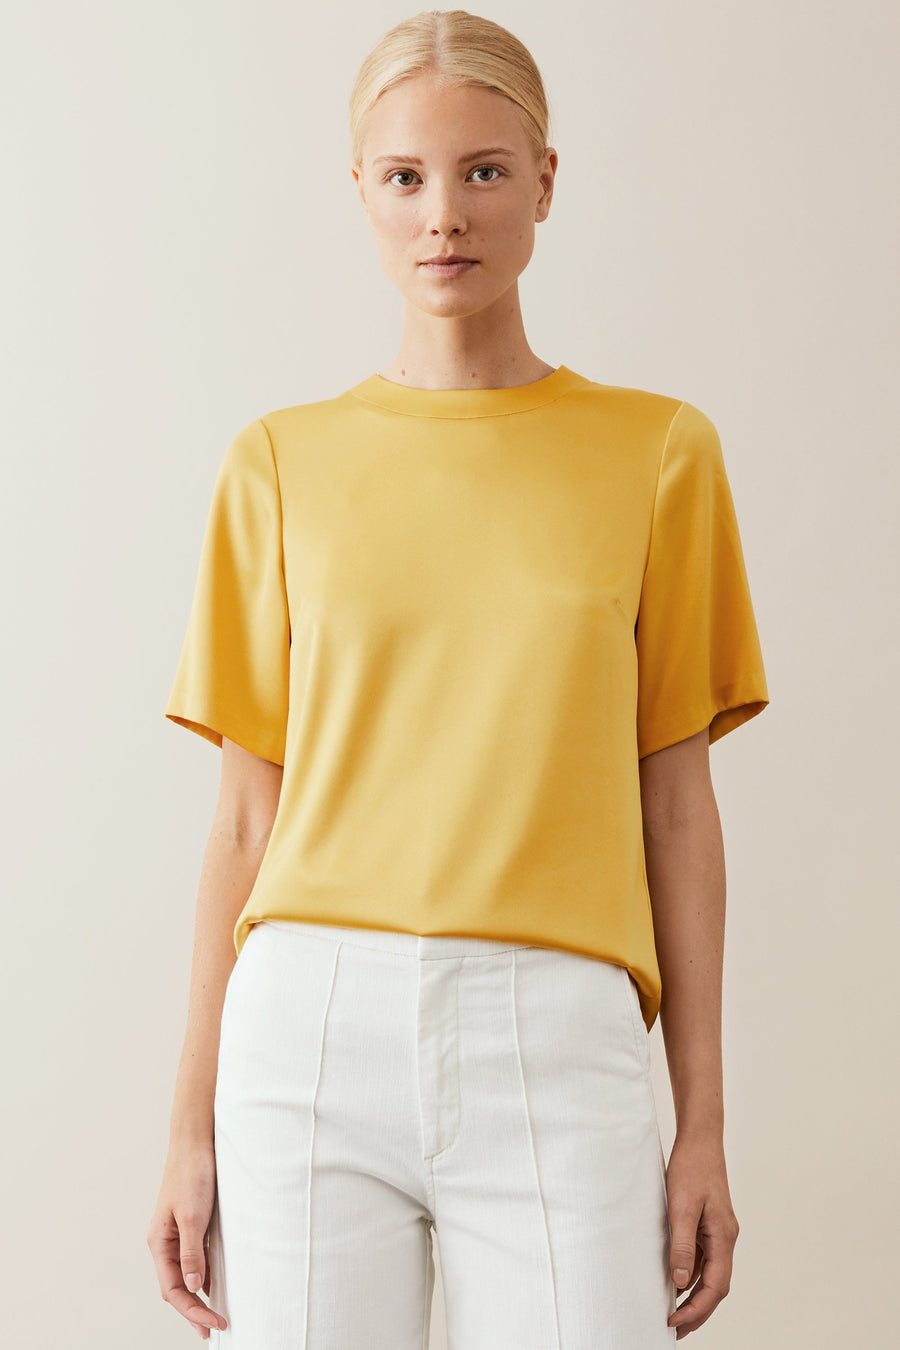 MATCHA TOP - YELLOW Top Stylein